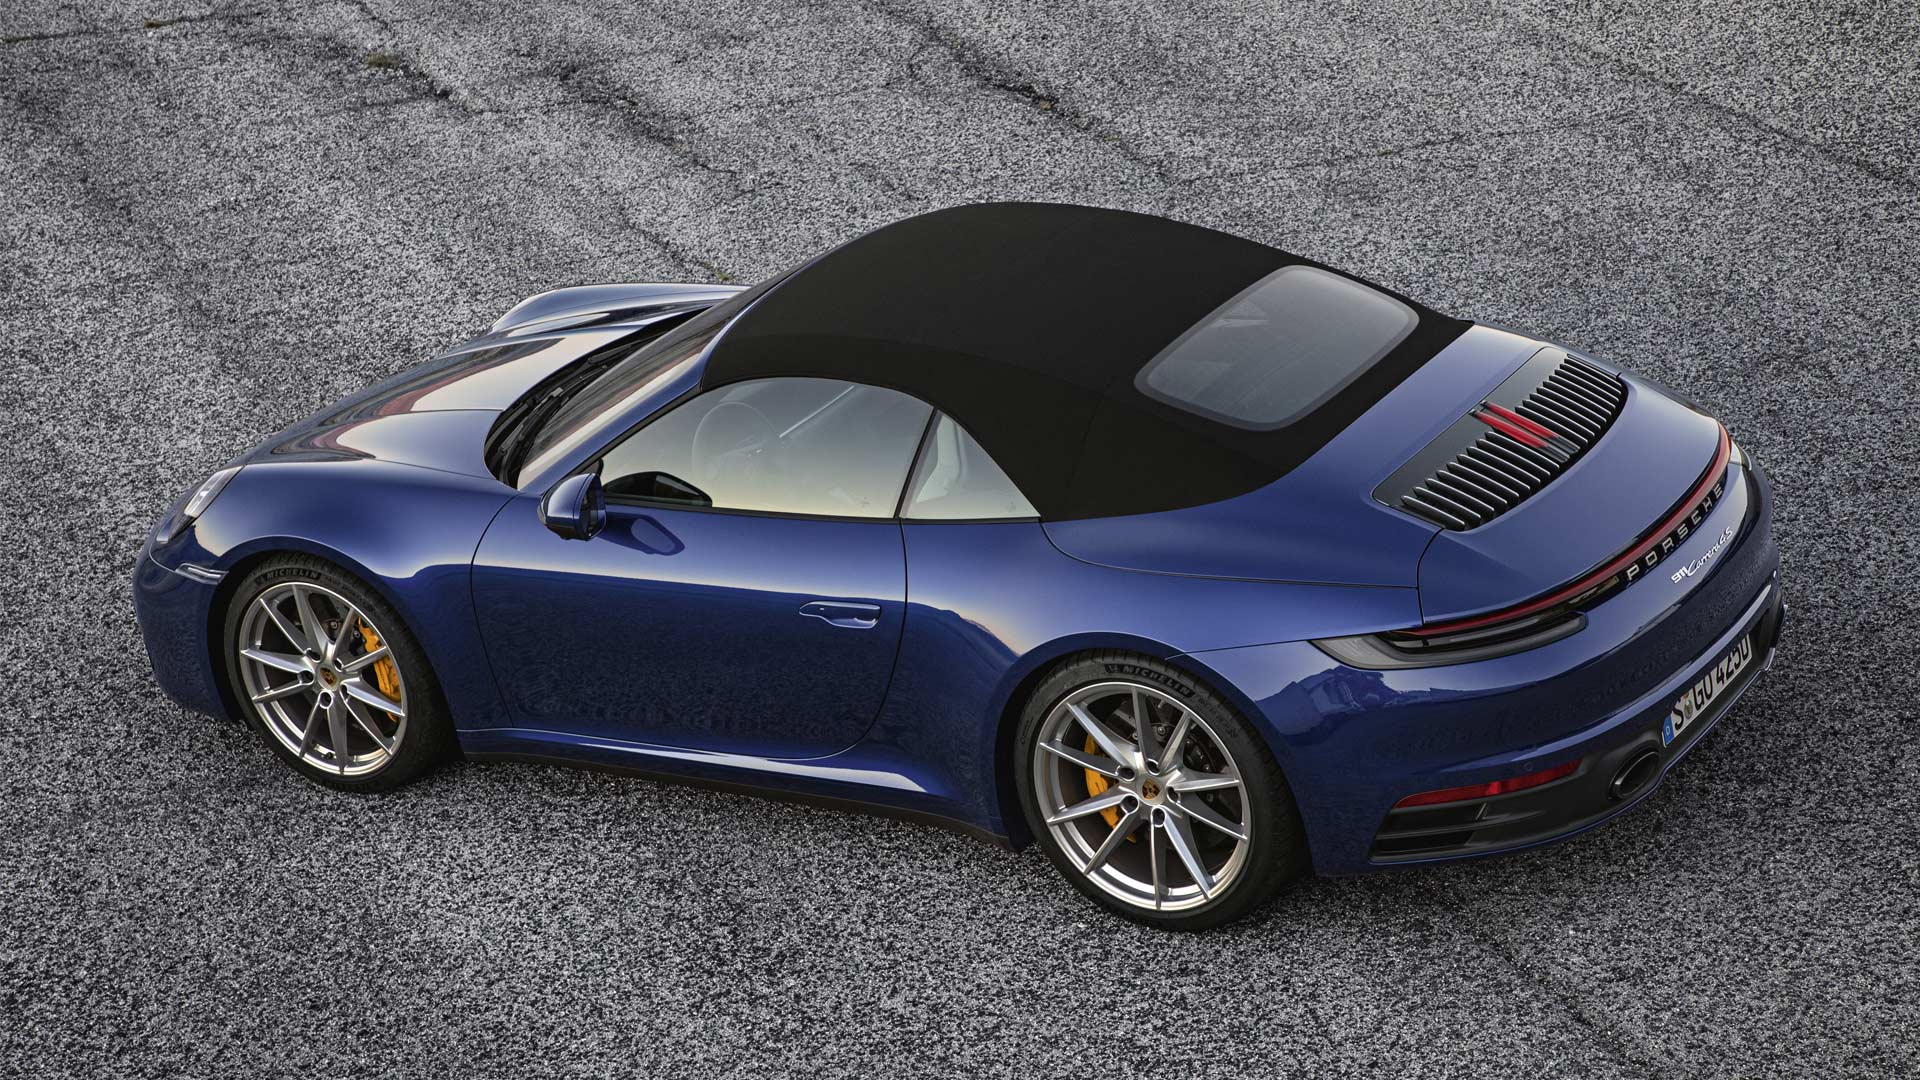 2020-911-Carrera-4S-Cabriolet-Roof-Closed